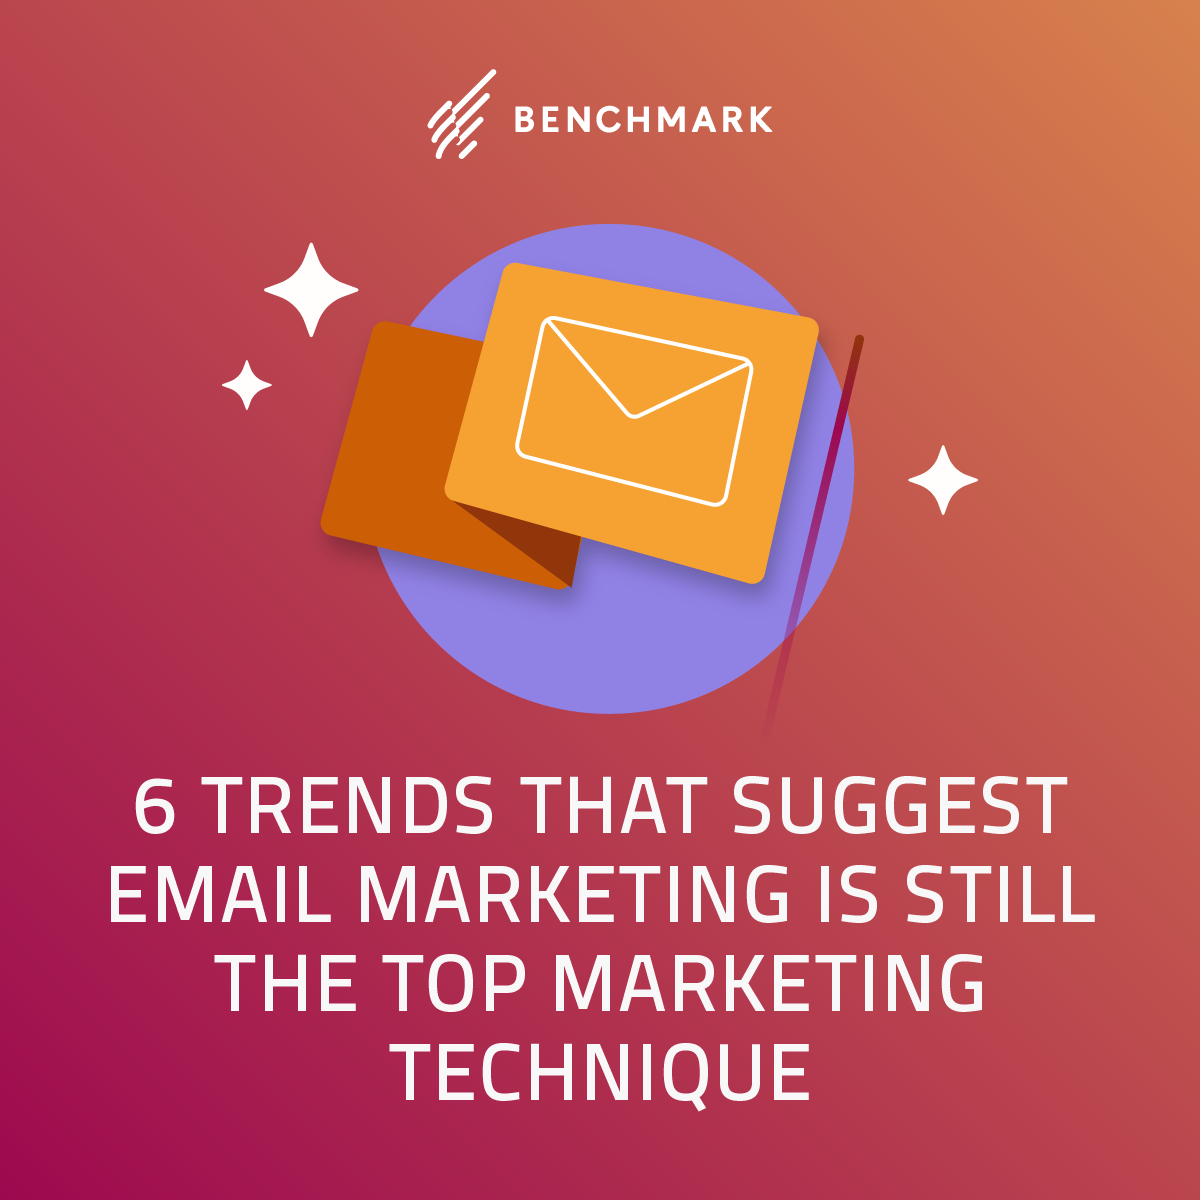 6 Trends That Suggest Email Marketing Is Still the Top Marketing Technique